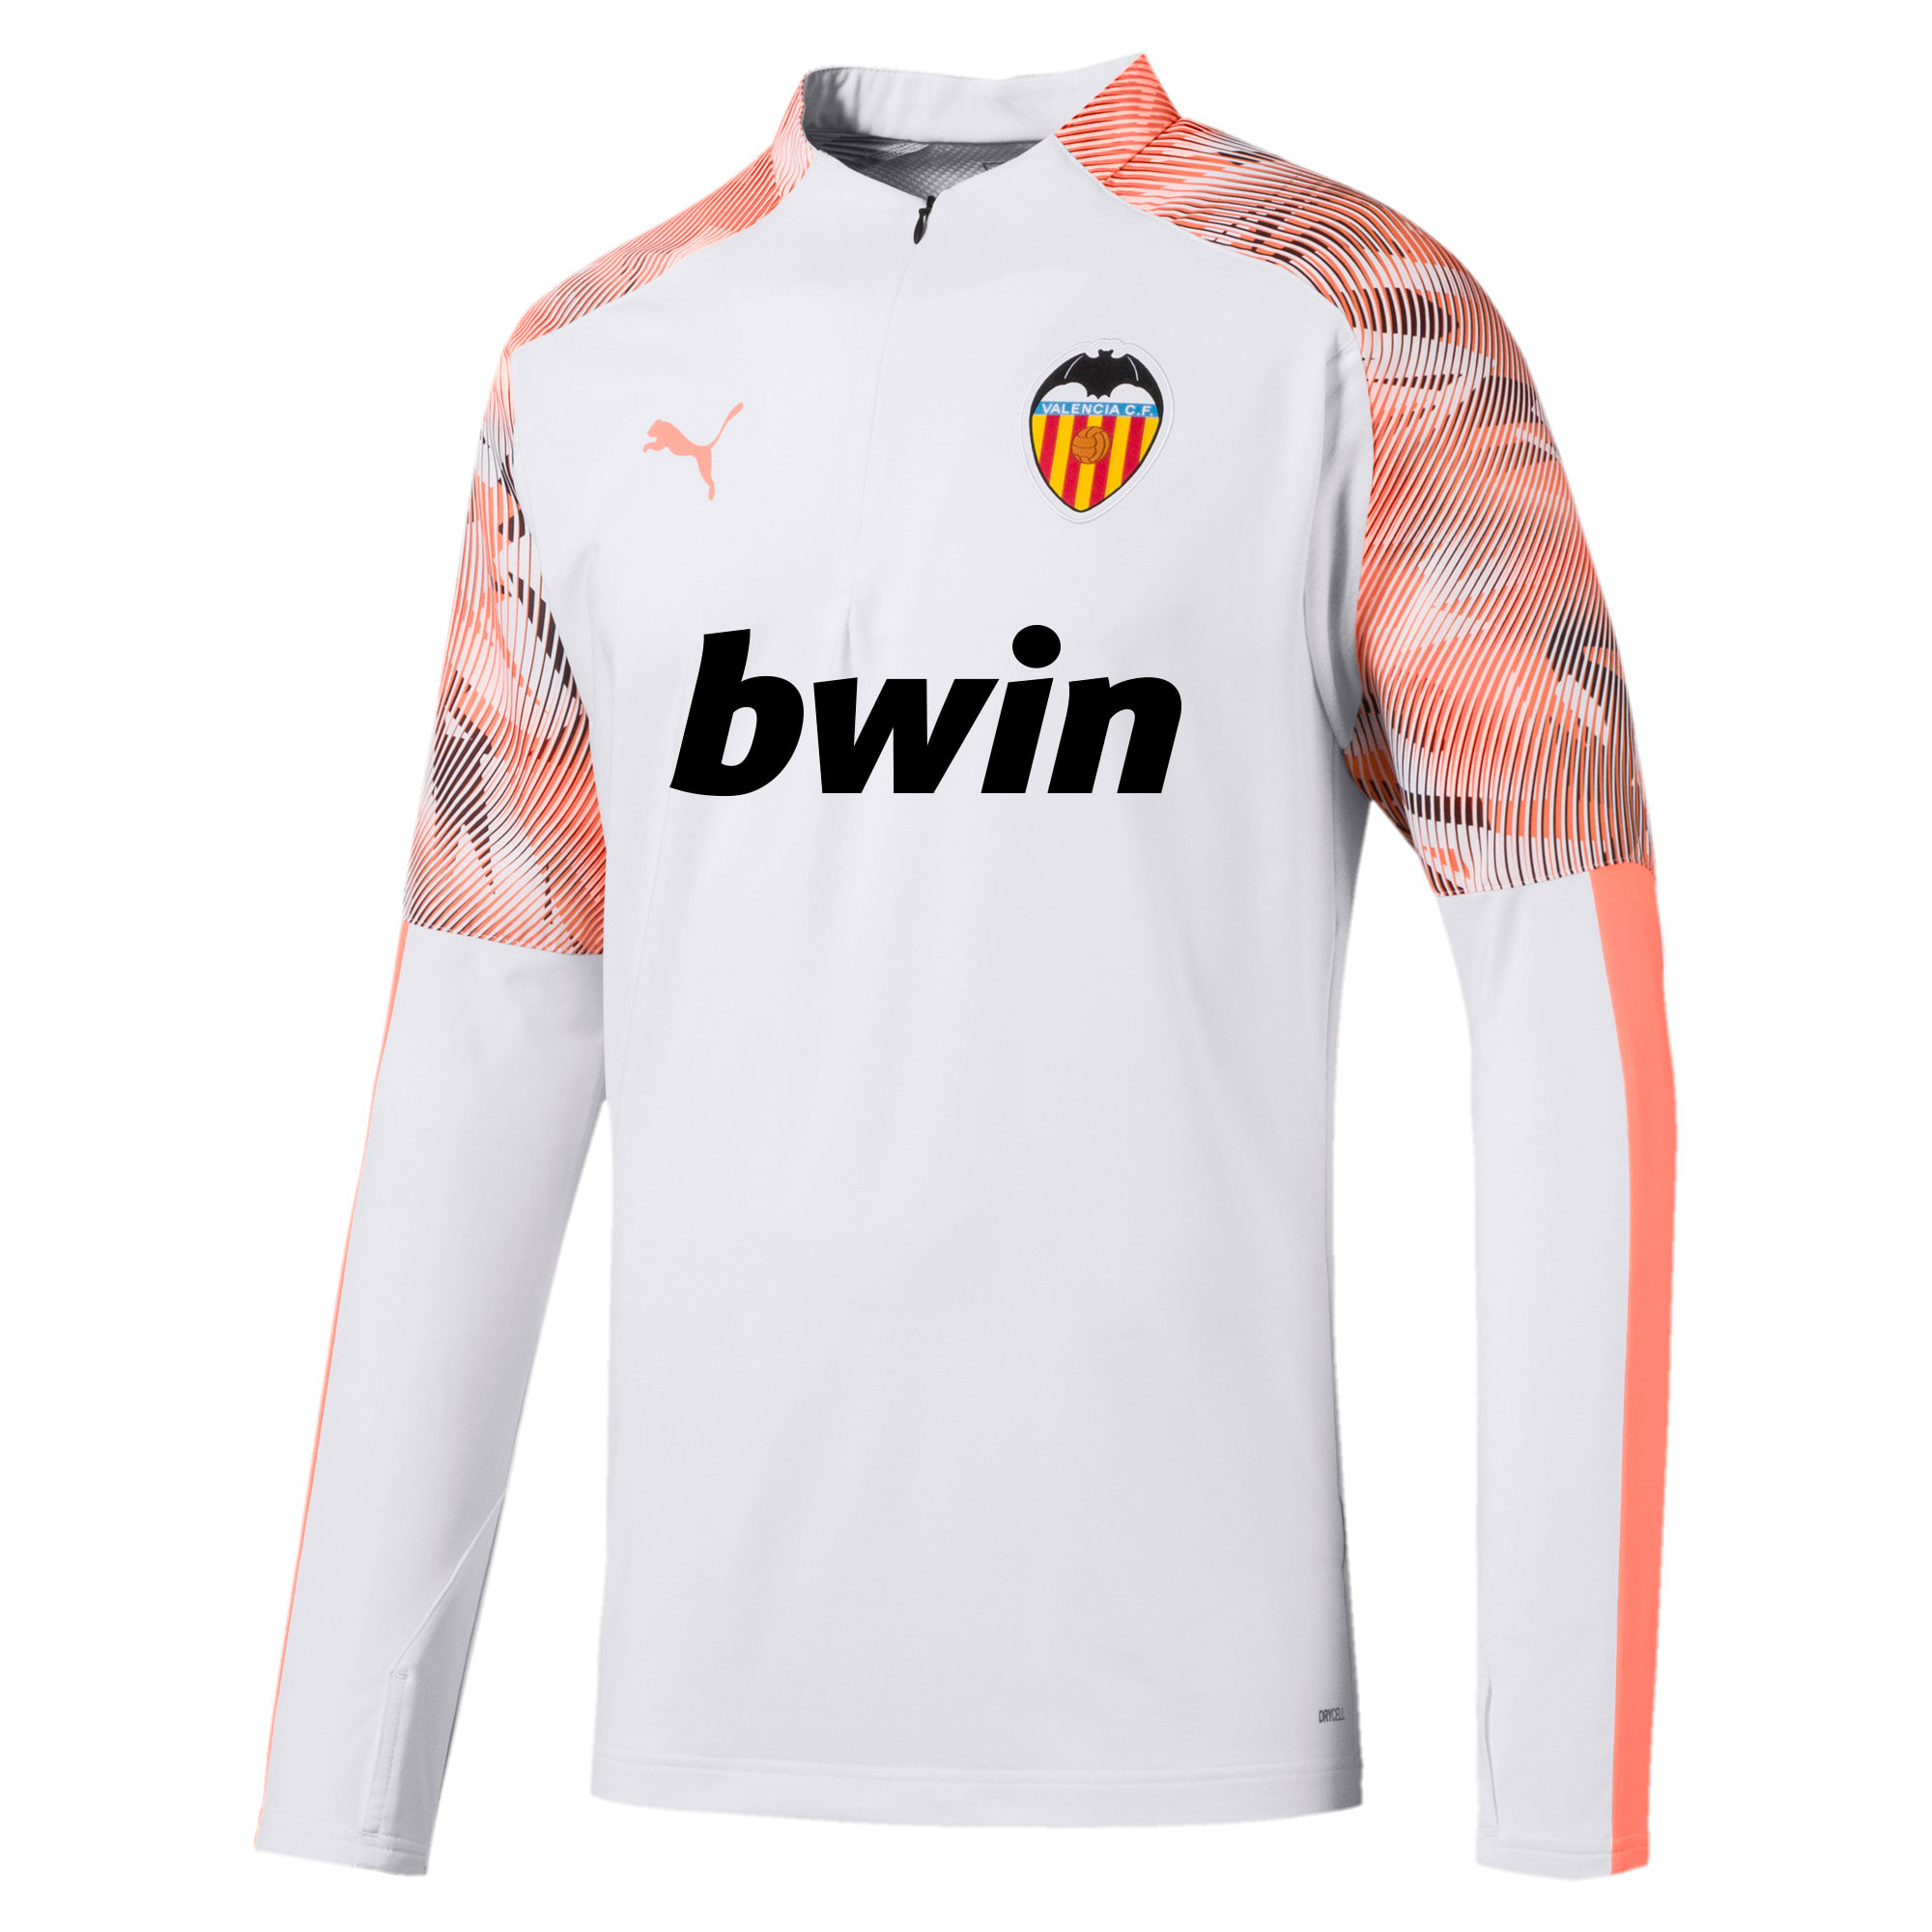 Thumbnail 1 of Valencia CF Herren Sweatshirt, Puma White-Fizzy Orange, medium